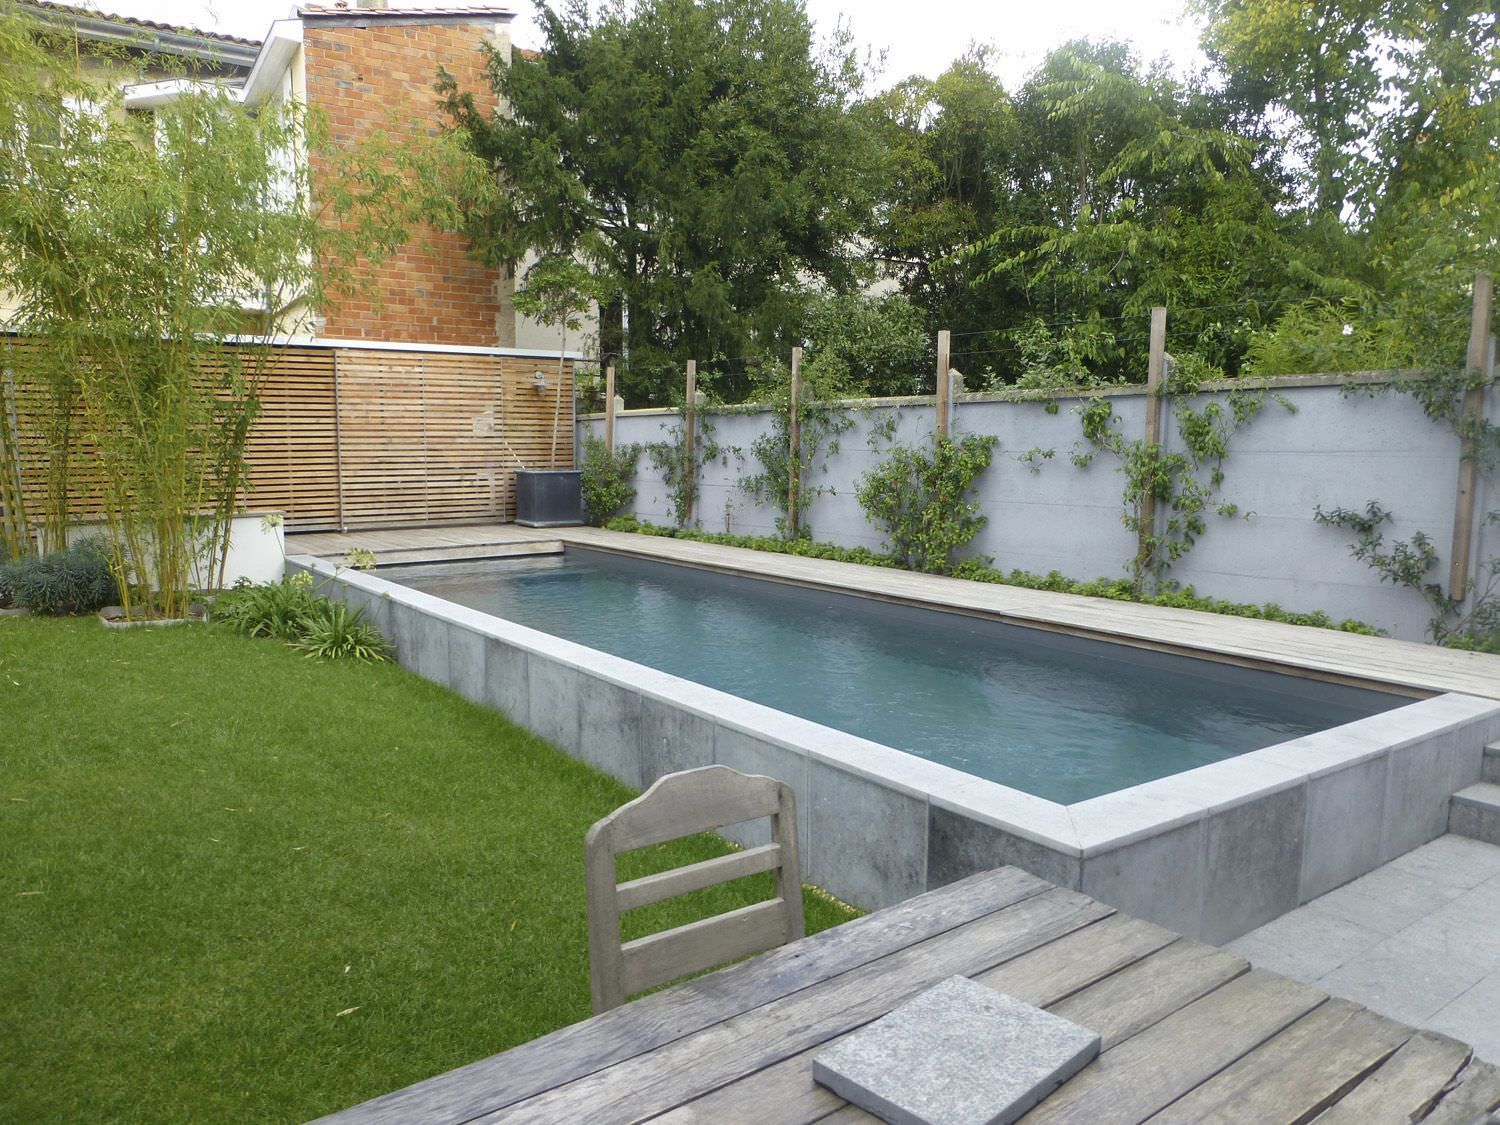 Piscine semi enterr e en b ton plouf pinterest for Piscine hors sol en beton